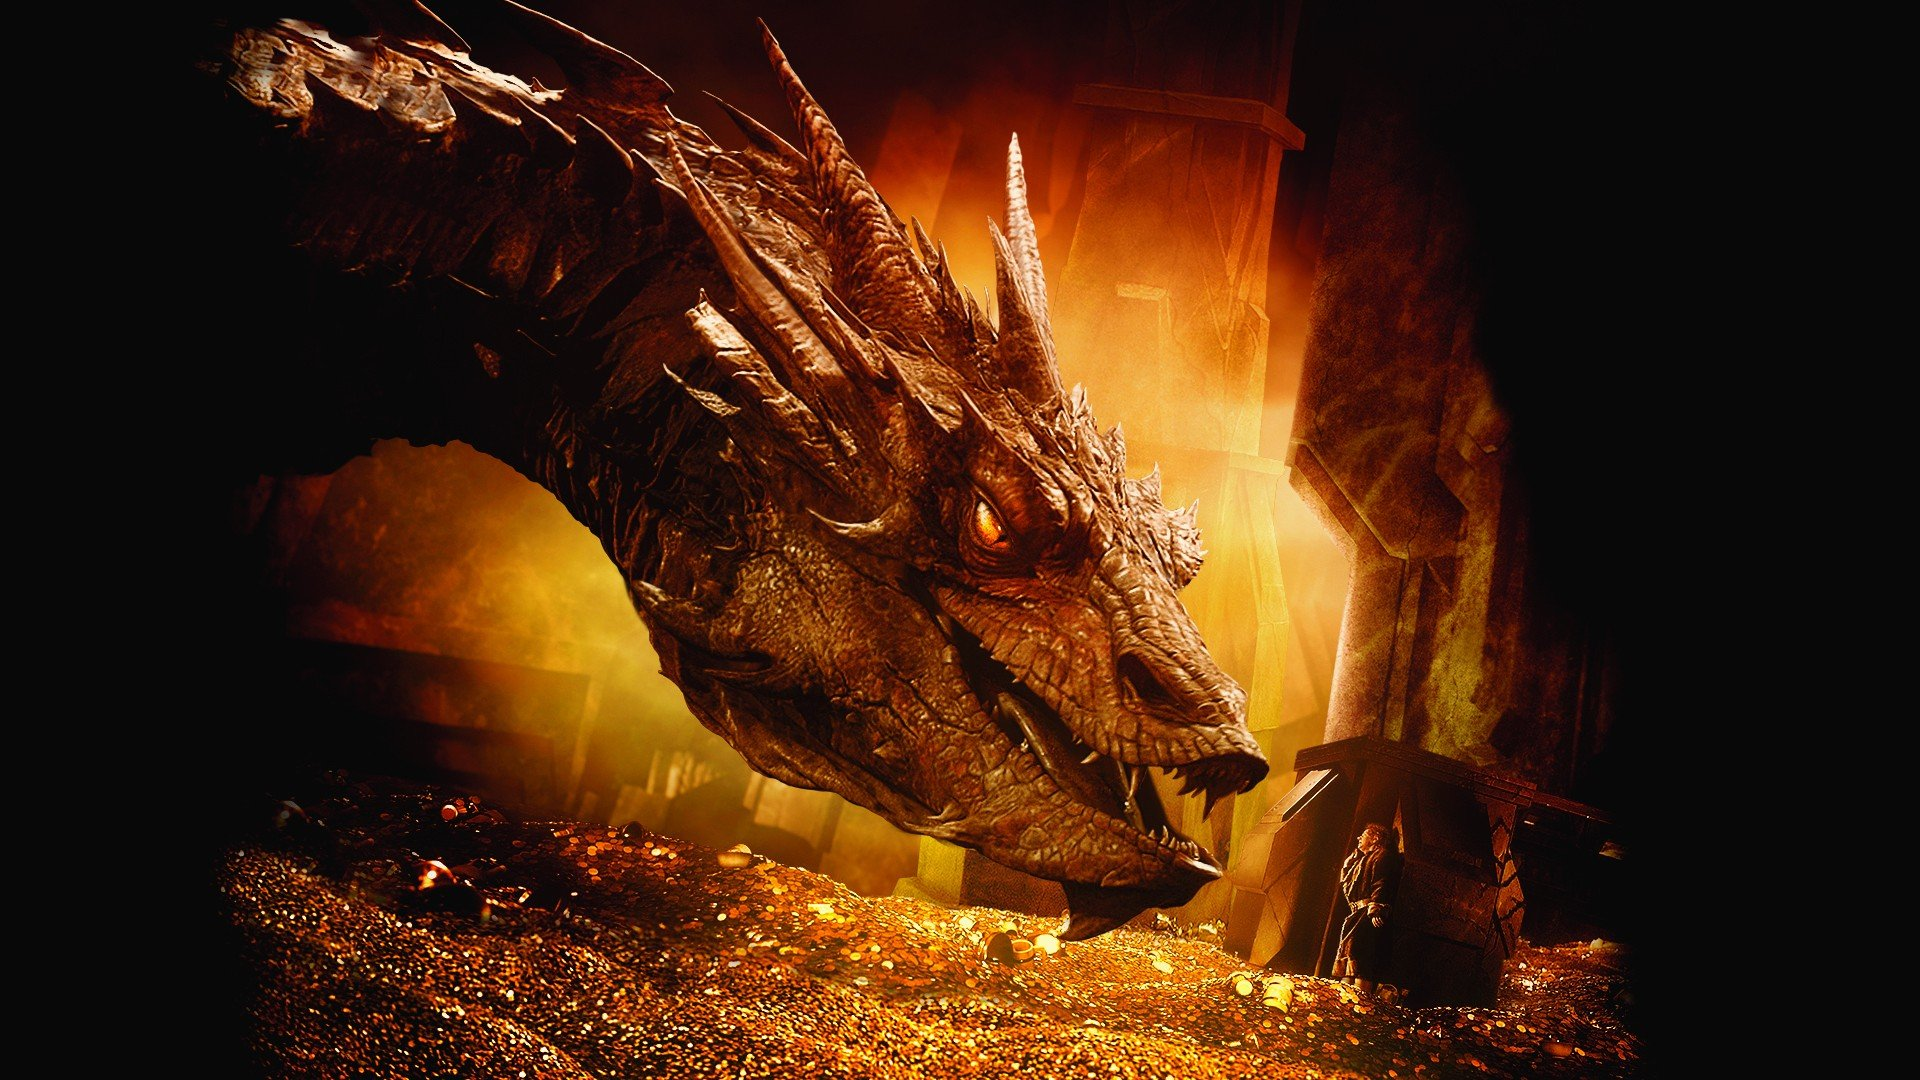 Smaug Wallpaper - WallpaperSafari